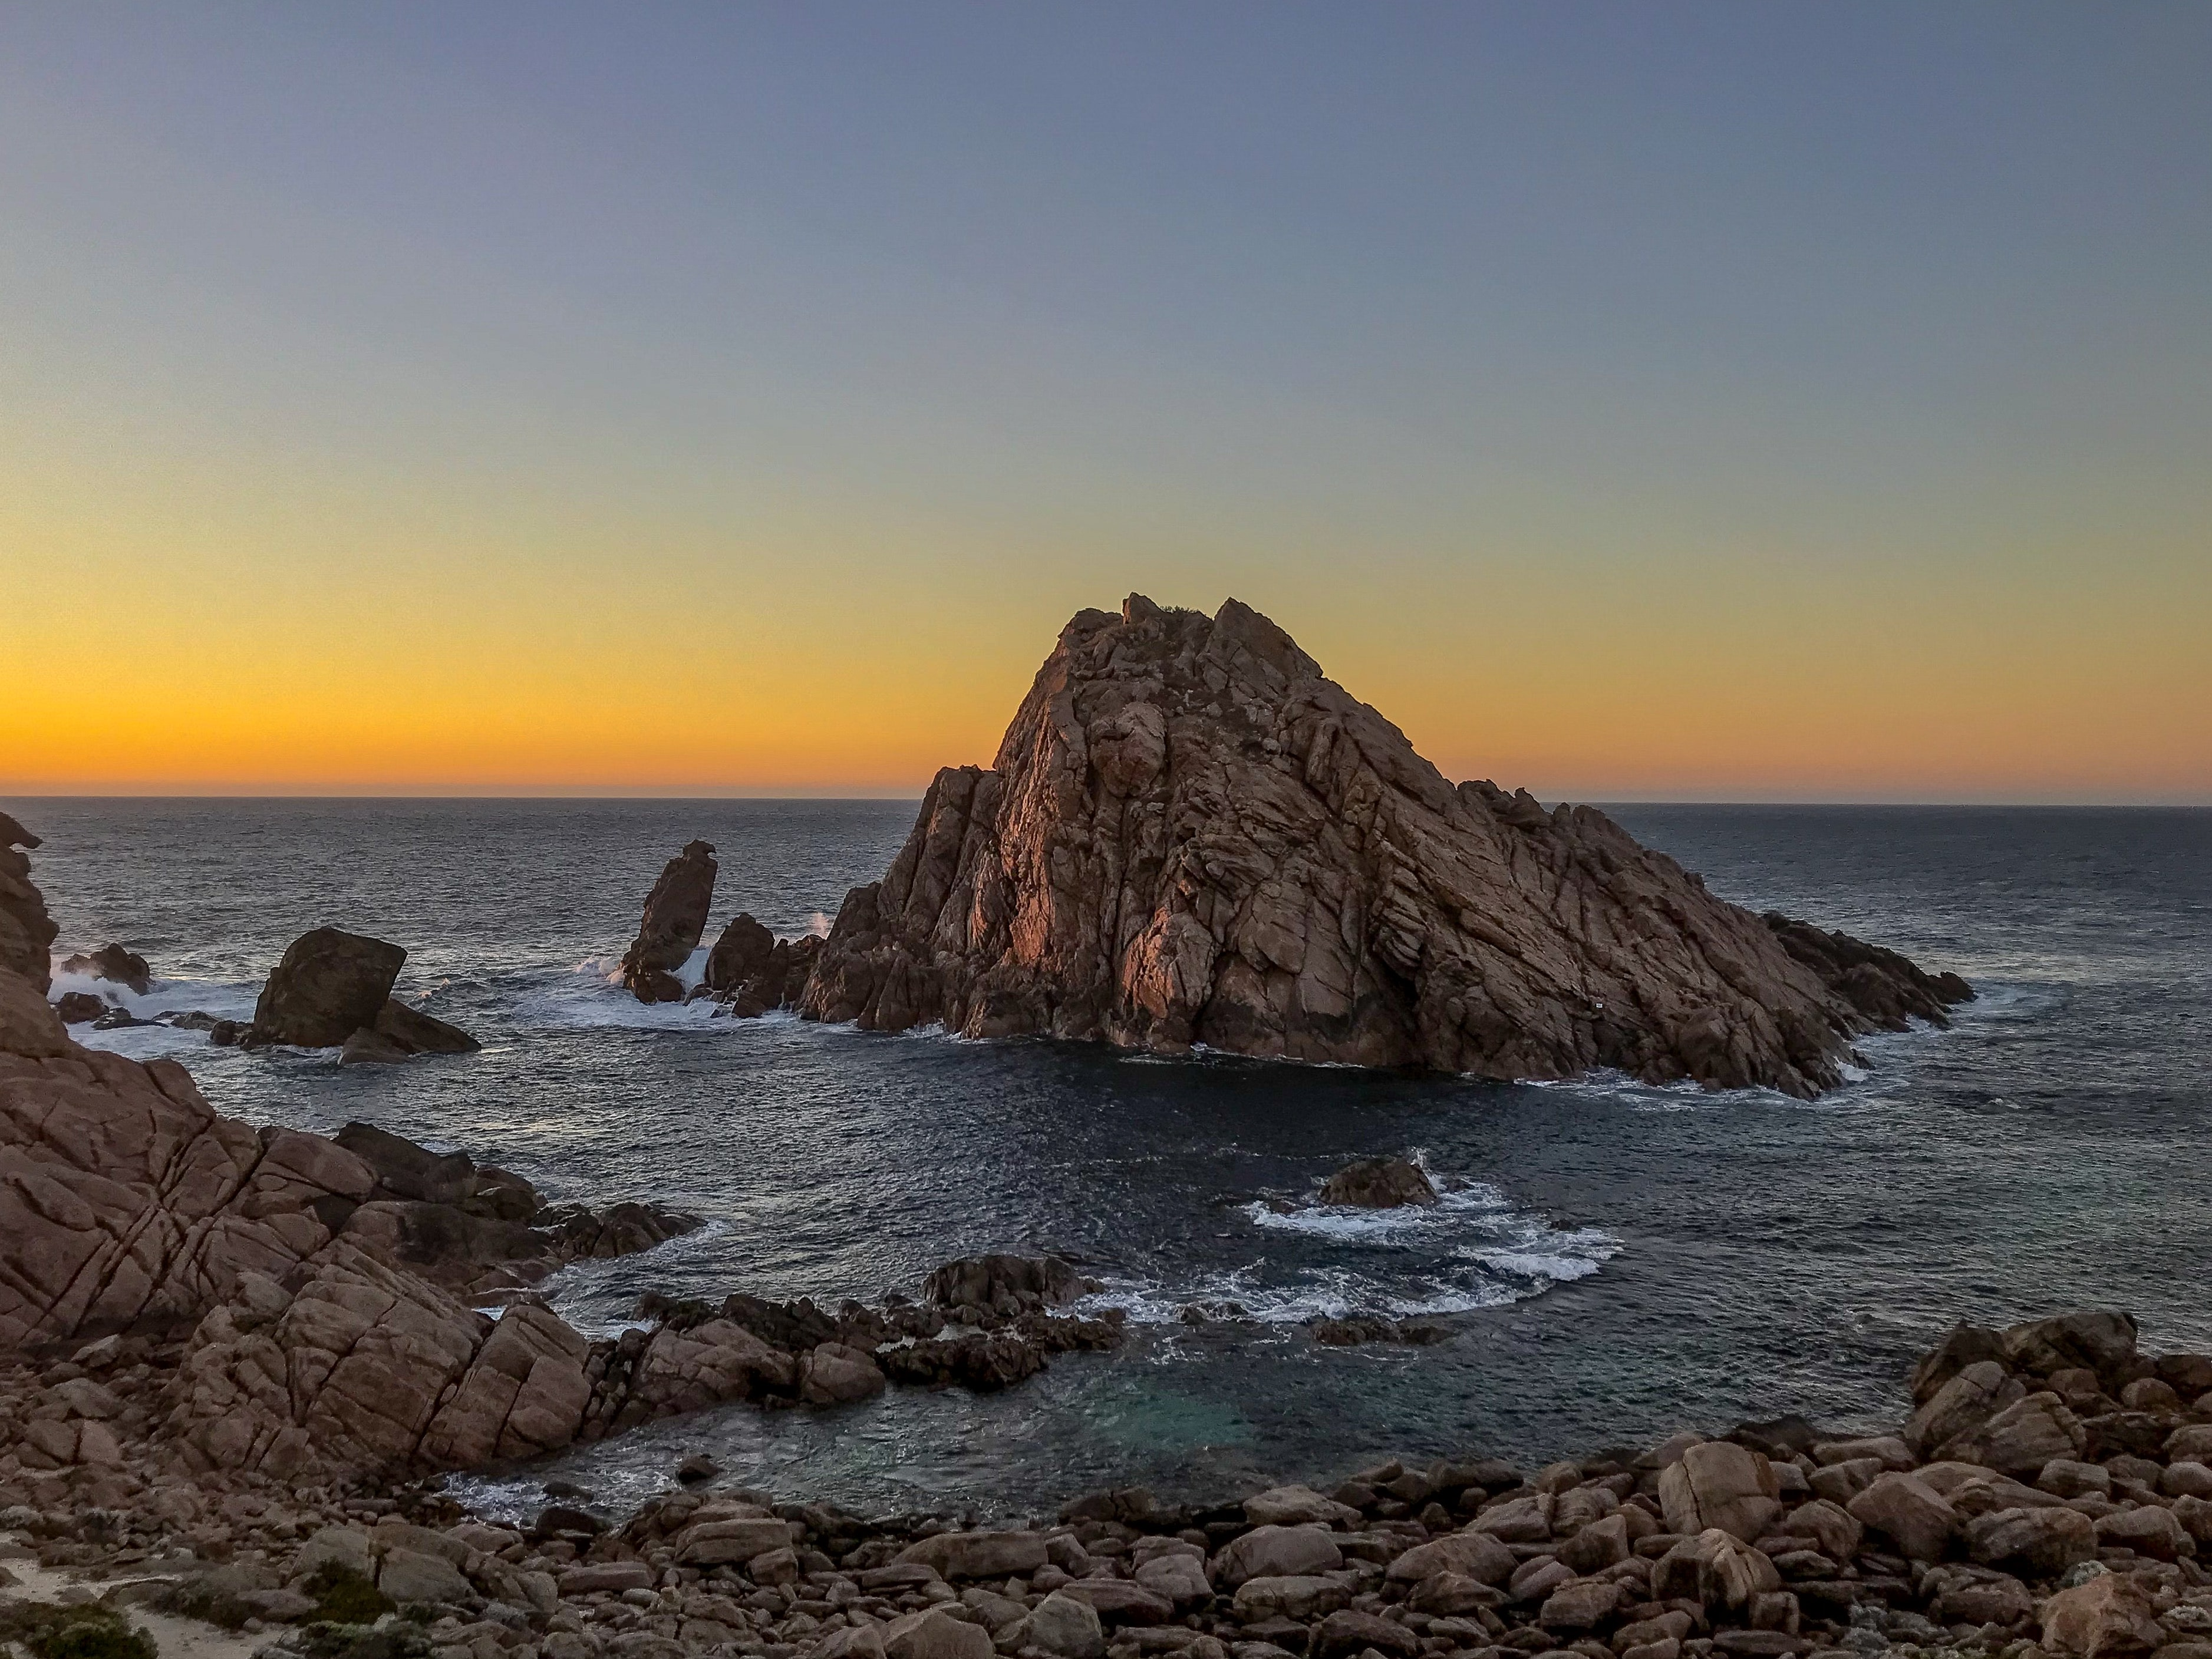 rock formation on sea during sunset